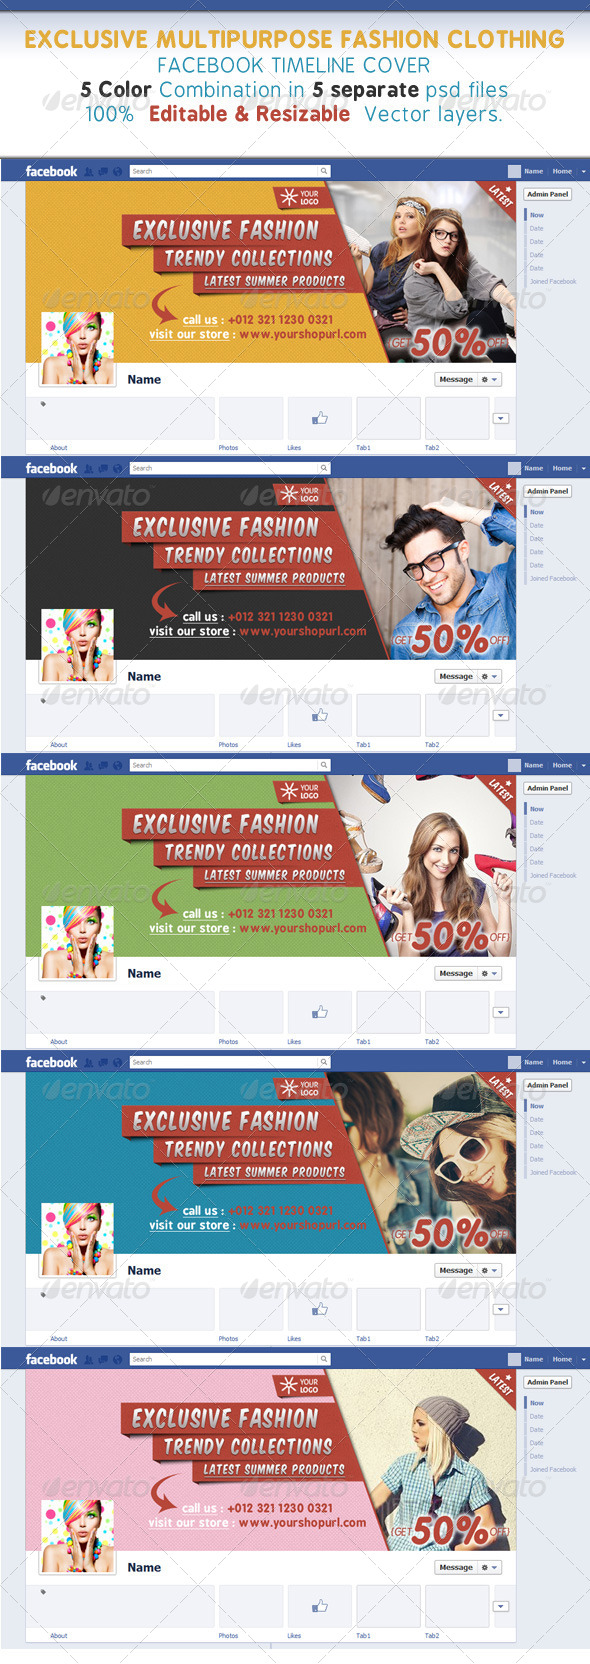 GraphicRiver Glamour & Fashion Clothing Facebook Timeline Cover 7412223